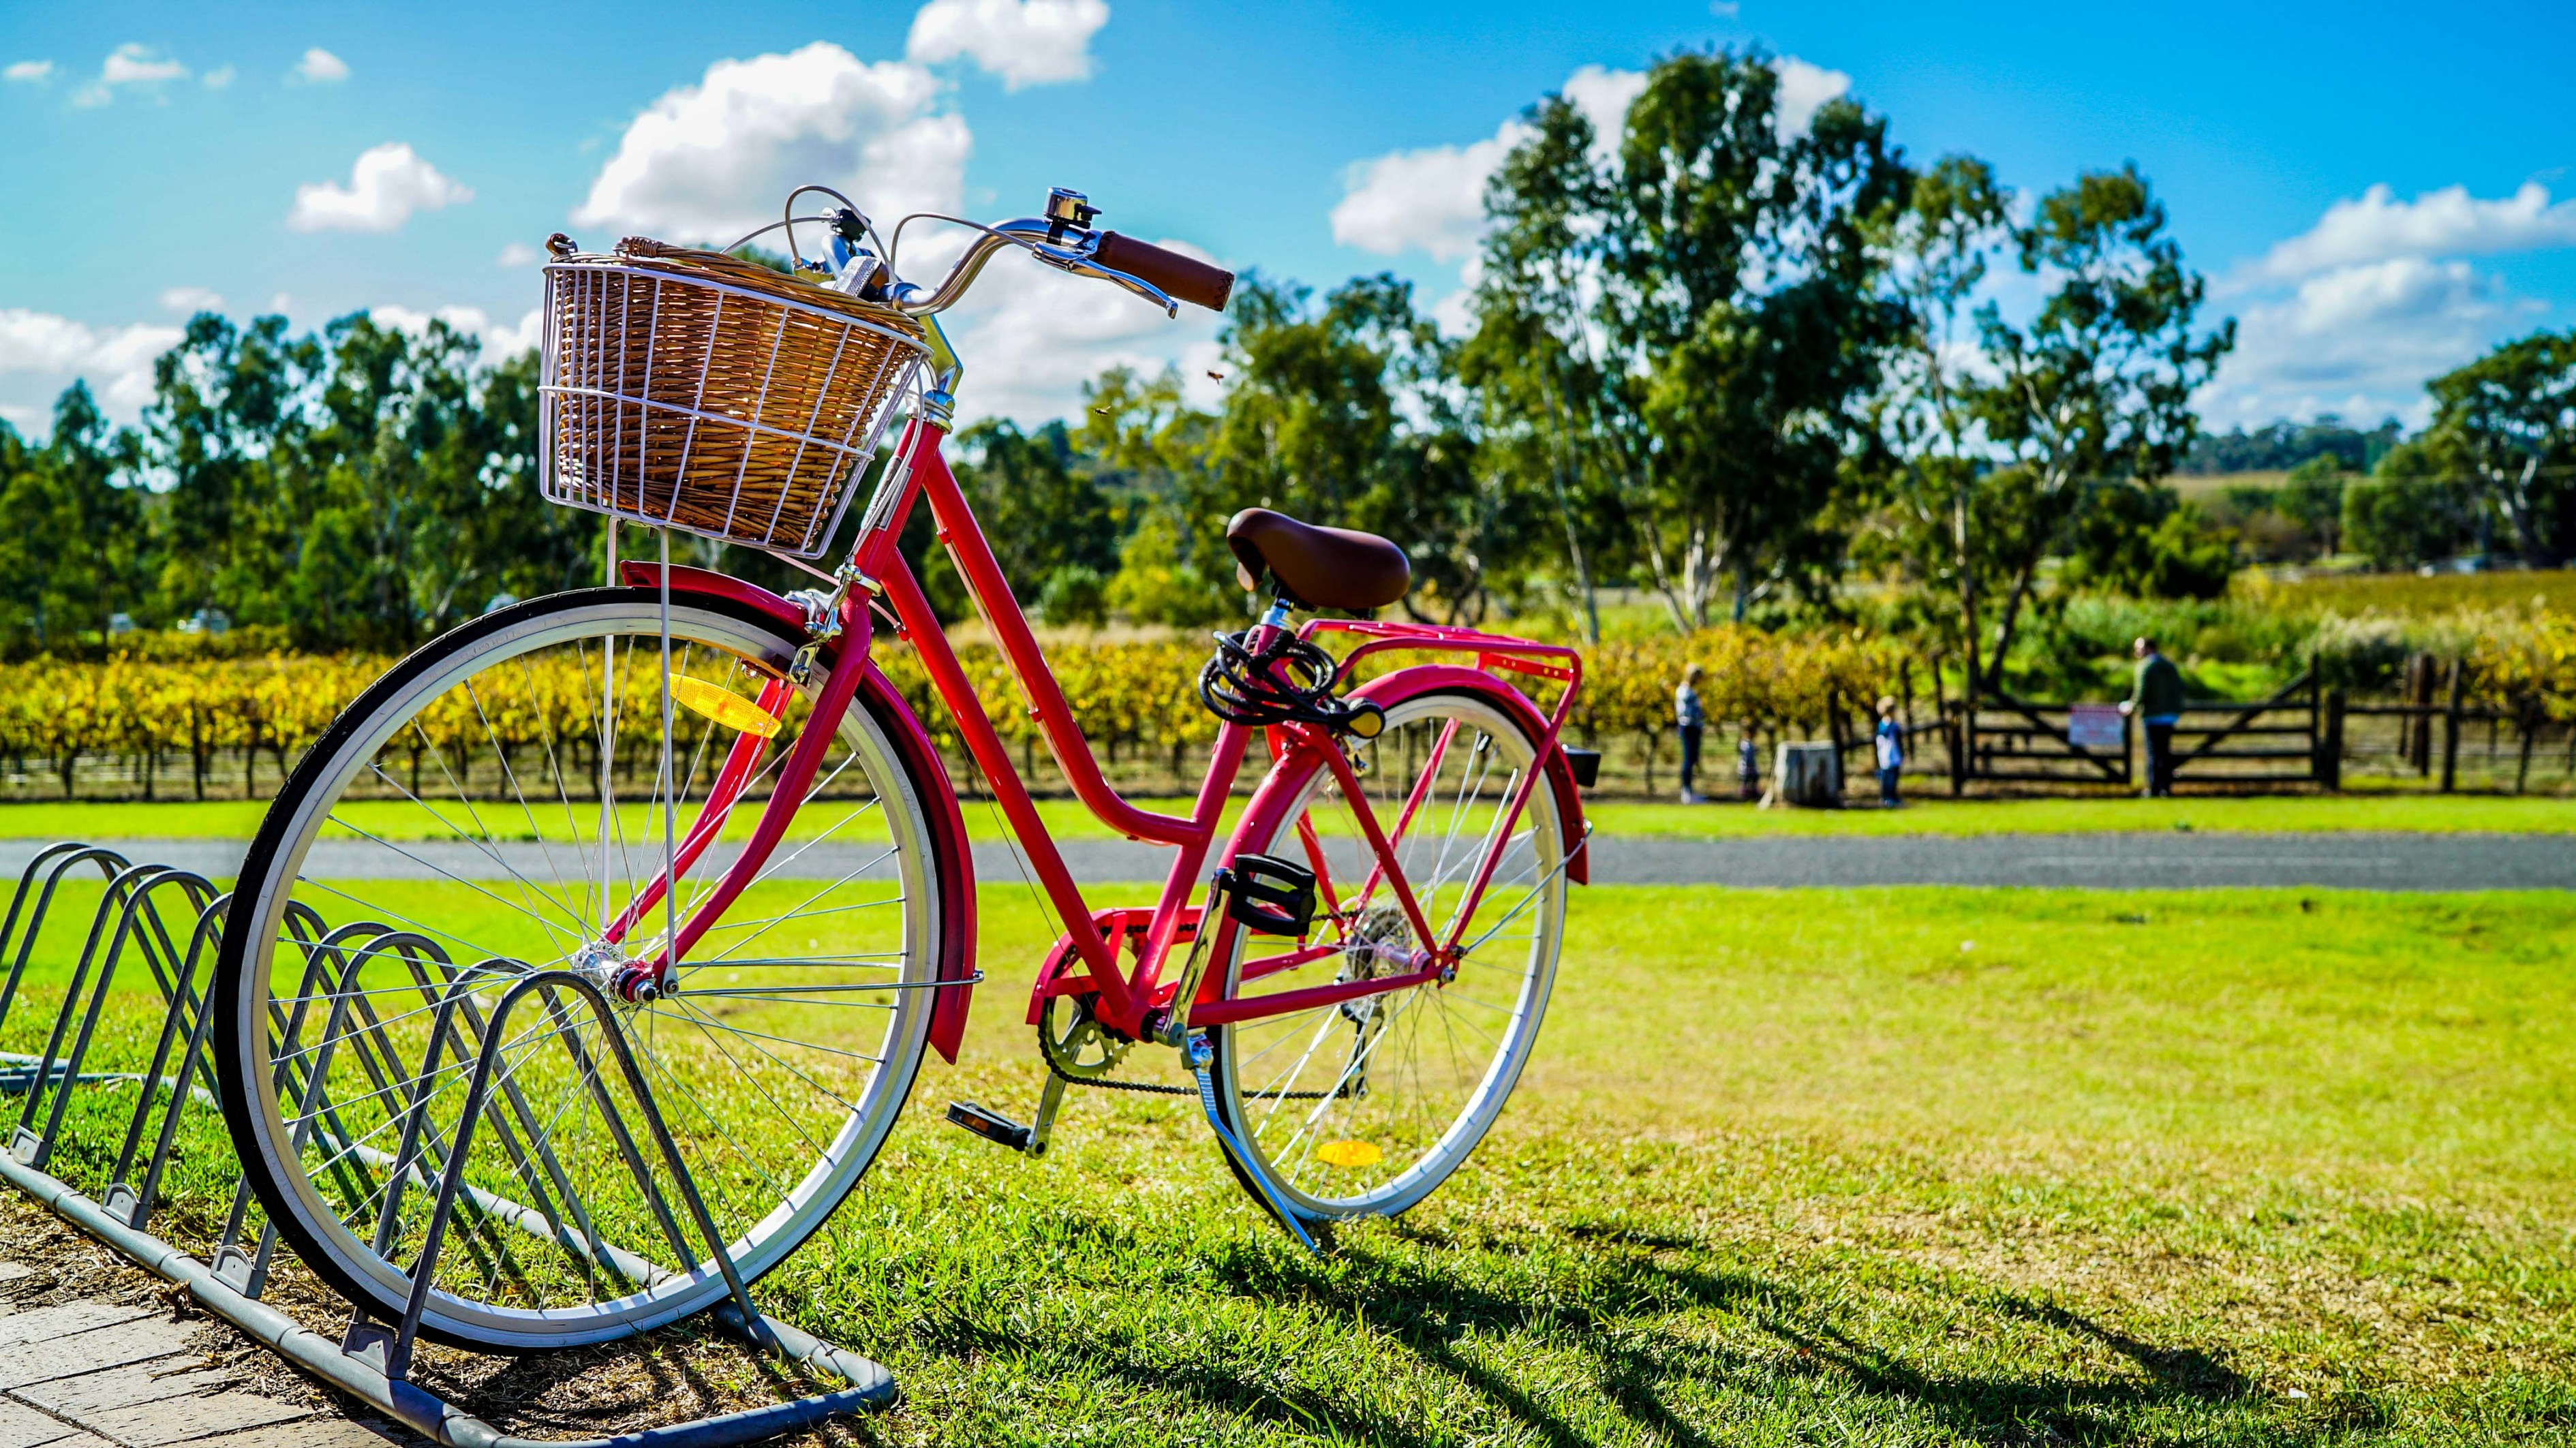 Red bicycle on the park